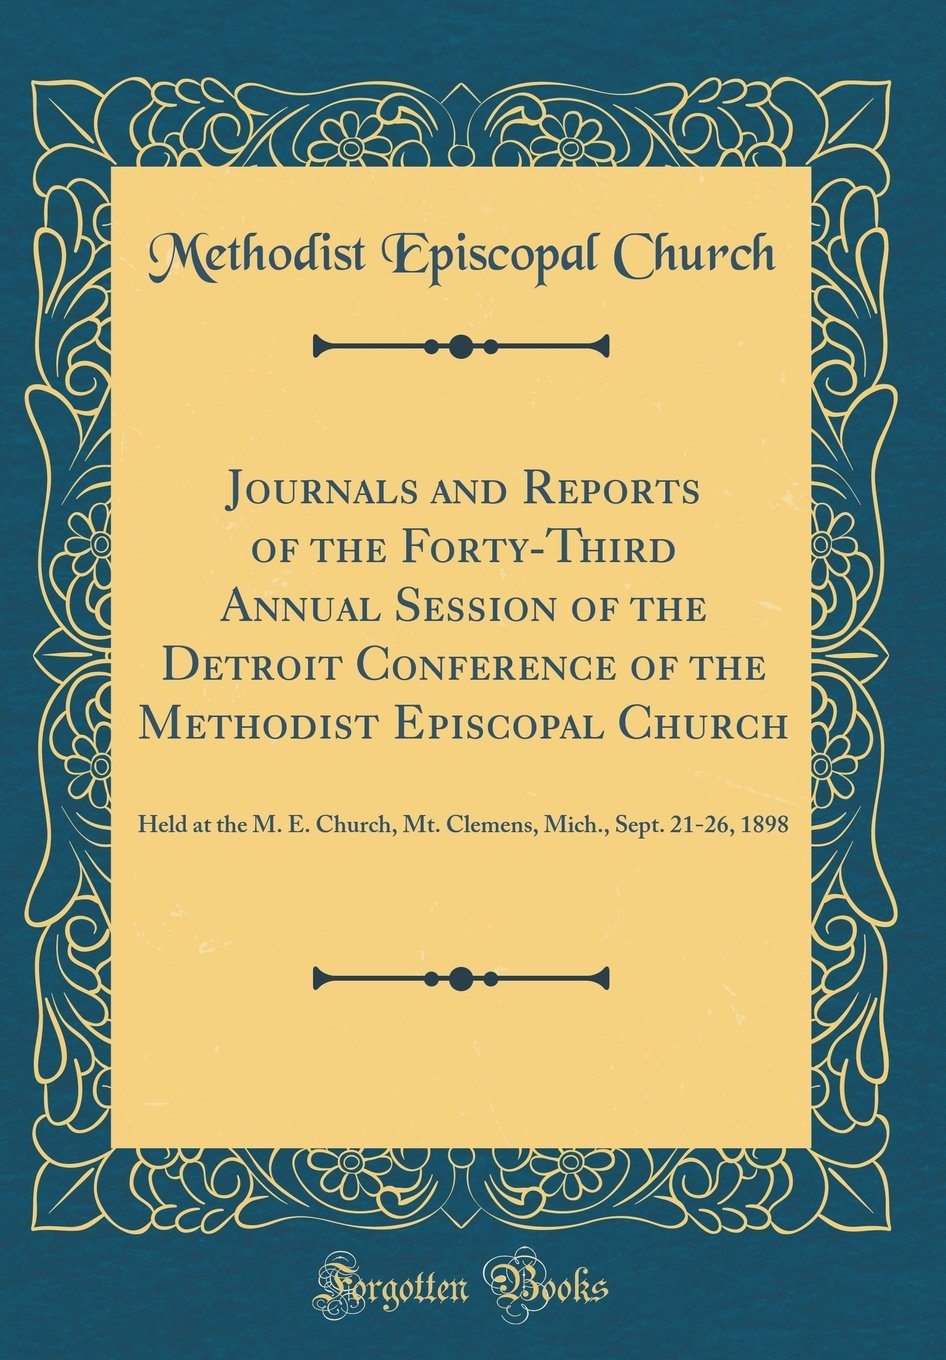 Journals and Reports of the Forty-Third Annual Session of the Detroit Conference of the Methodist Episcopal Church: Held at the M. E. Church, Mt. Clemens, Mich., Sept. 21-26, 1898 (Classic Reprint) PDF ePub ebook